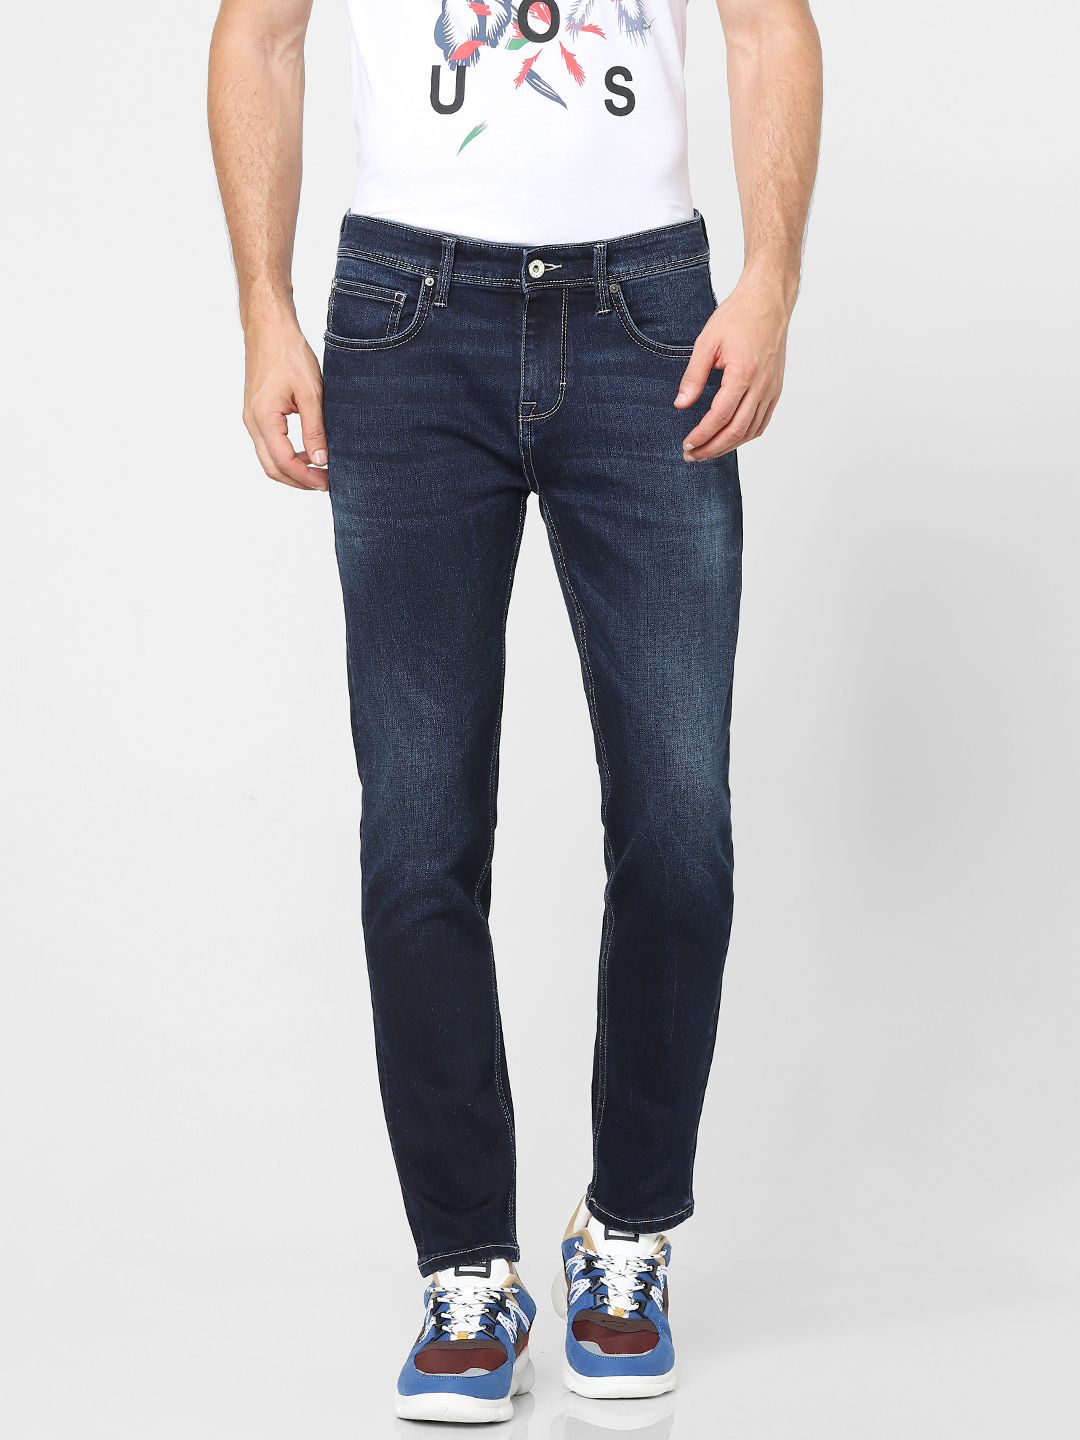 celio | Tapered Fit Double Stone Washed Jeans